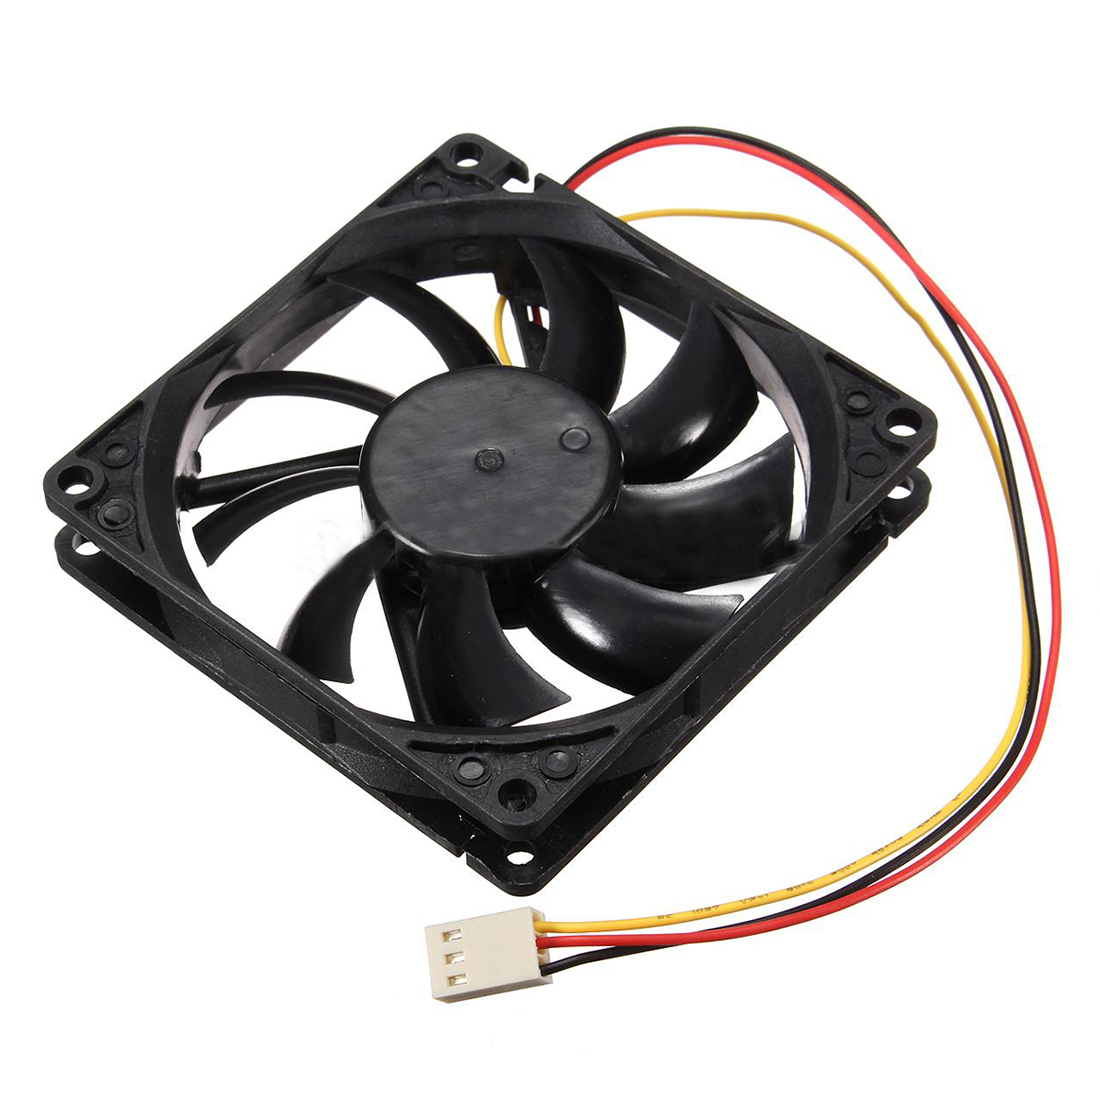 12V 3 Pin CPU Fan Heatsink Cooler Heatsink Fan For PC 80x80x15mm v 3 12